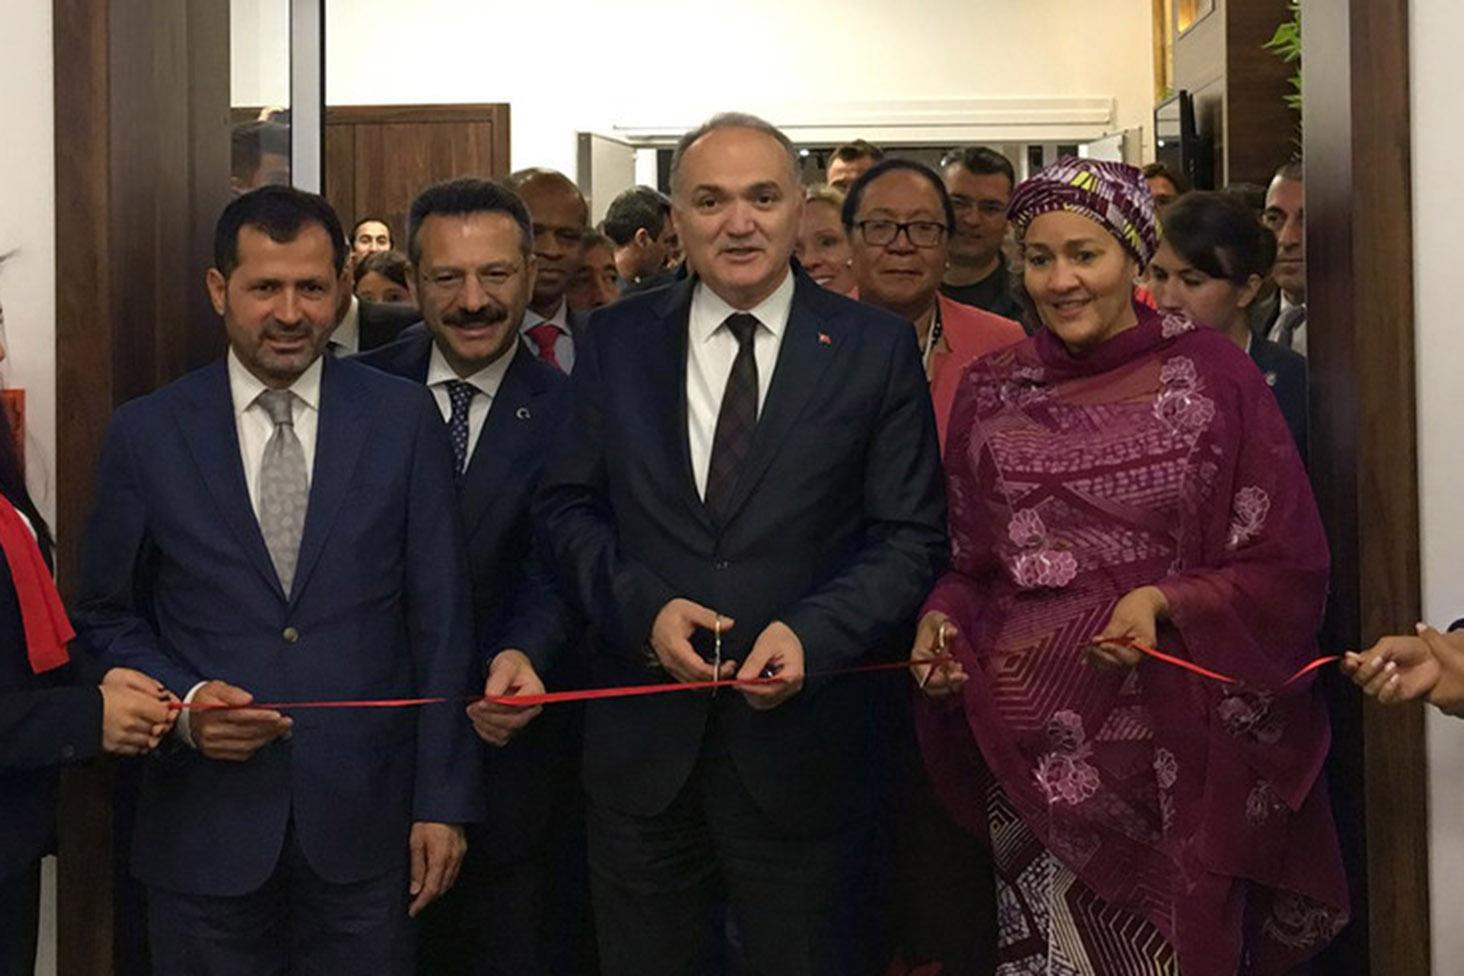 The UN Deputy Secretary-General, Amina Mohammed (right) and Faruk Özlü (centre), Minister of Science, Industry and Technology of Turkey inaugurate the Technology Bank.